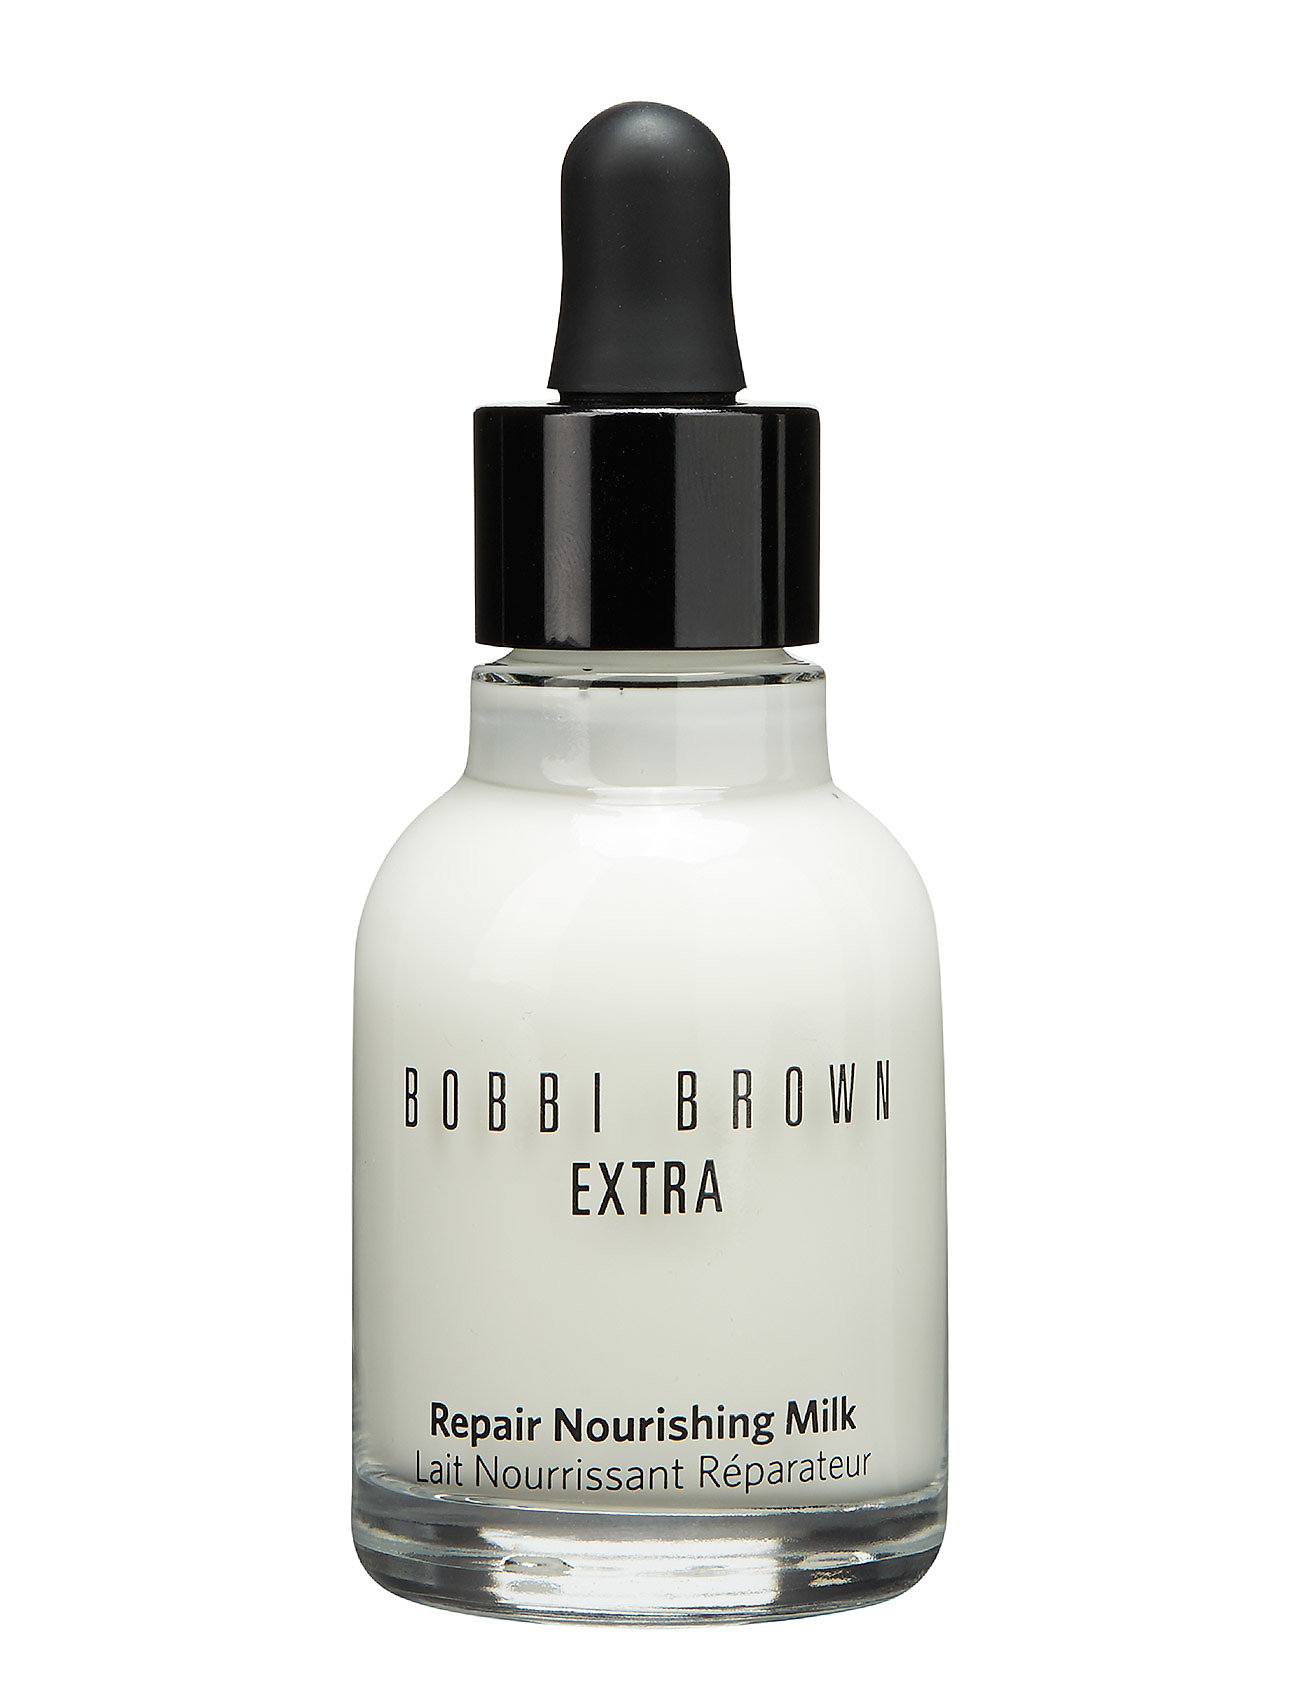 Extra repair nourishing milk fra bobbi brown – beauty men